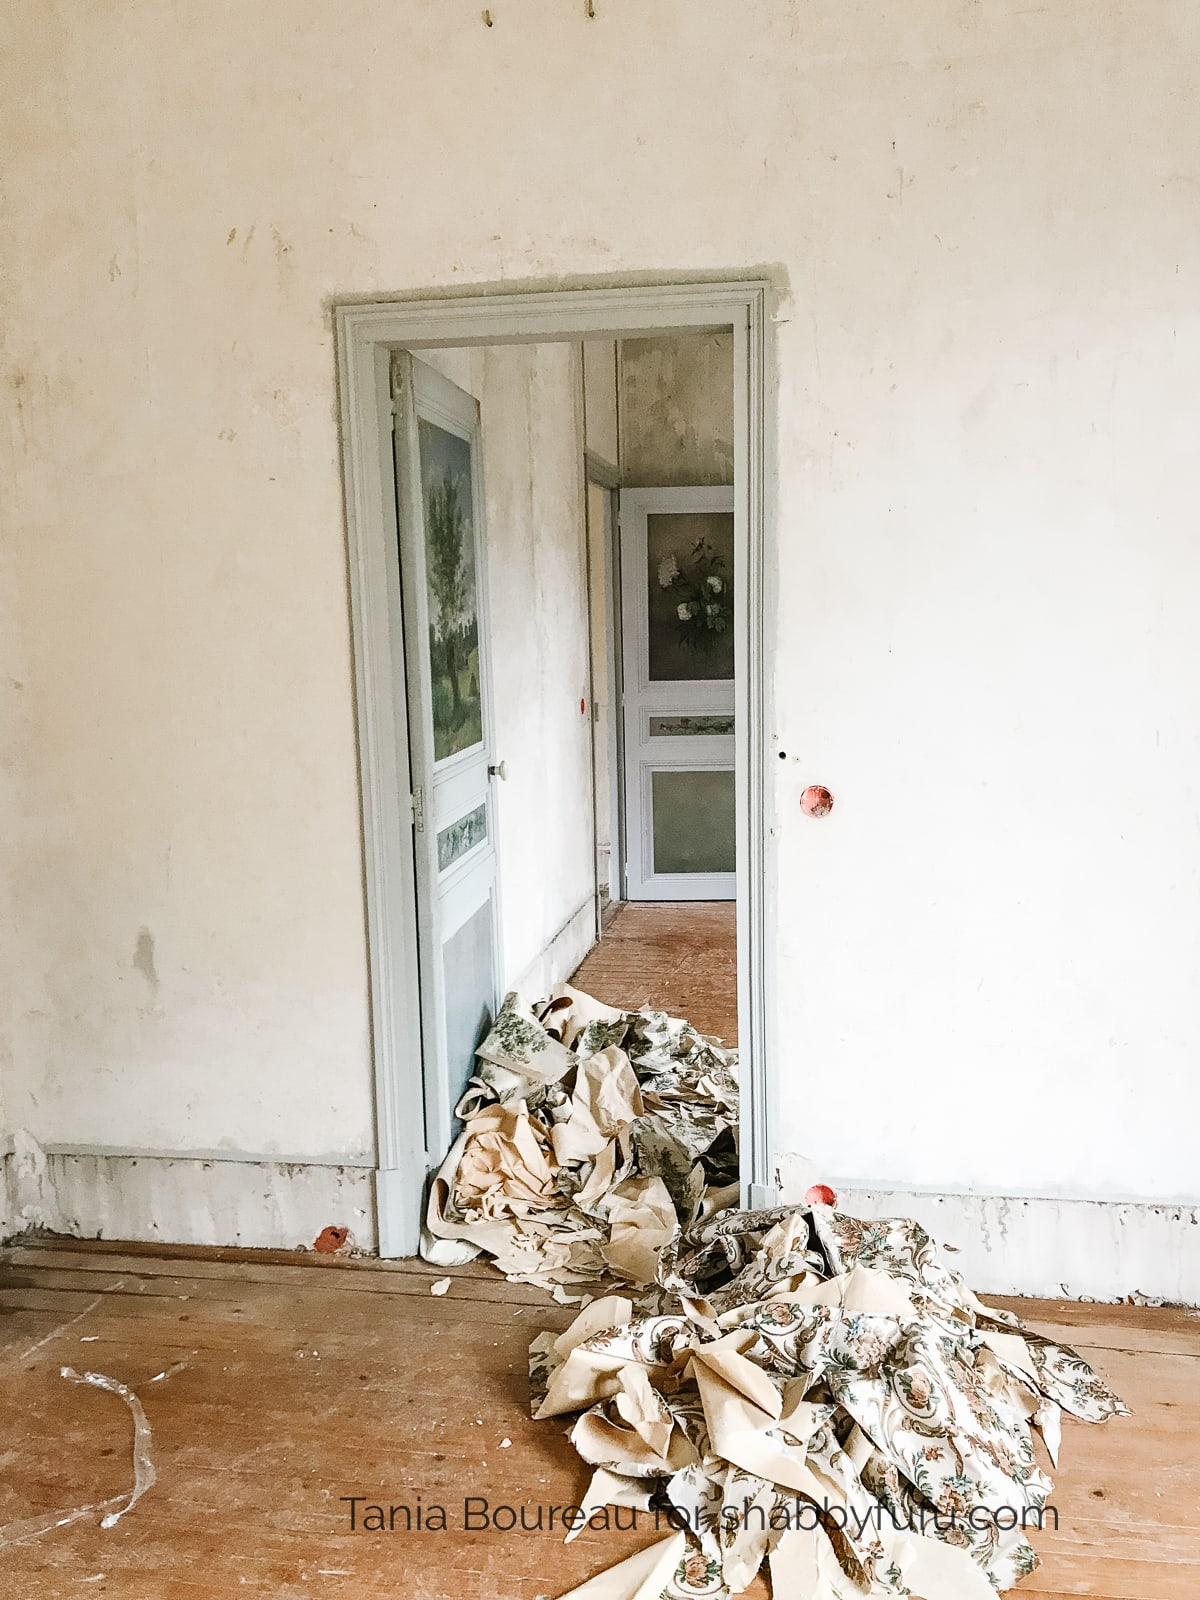 removing wallpaper in an old home in France